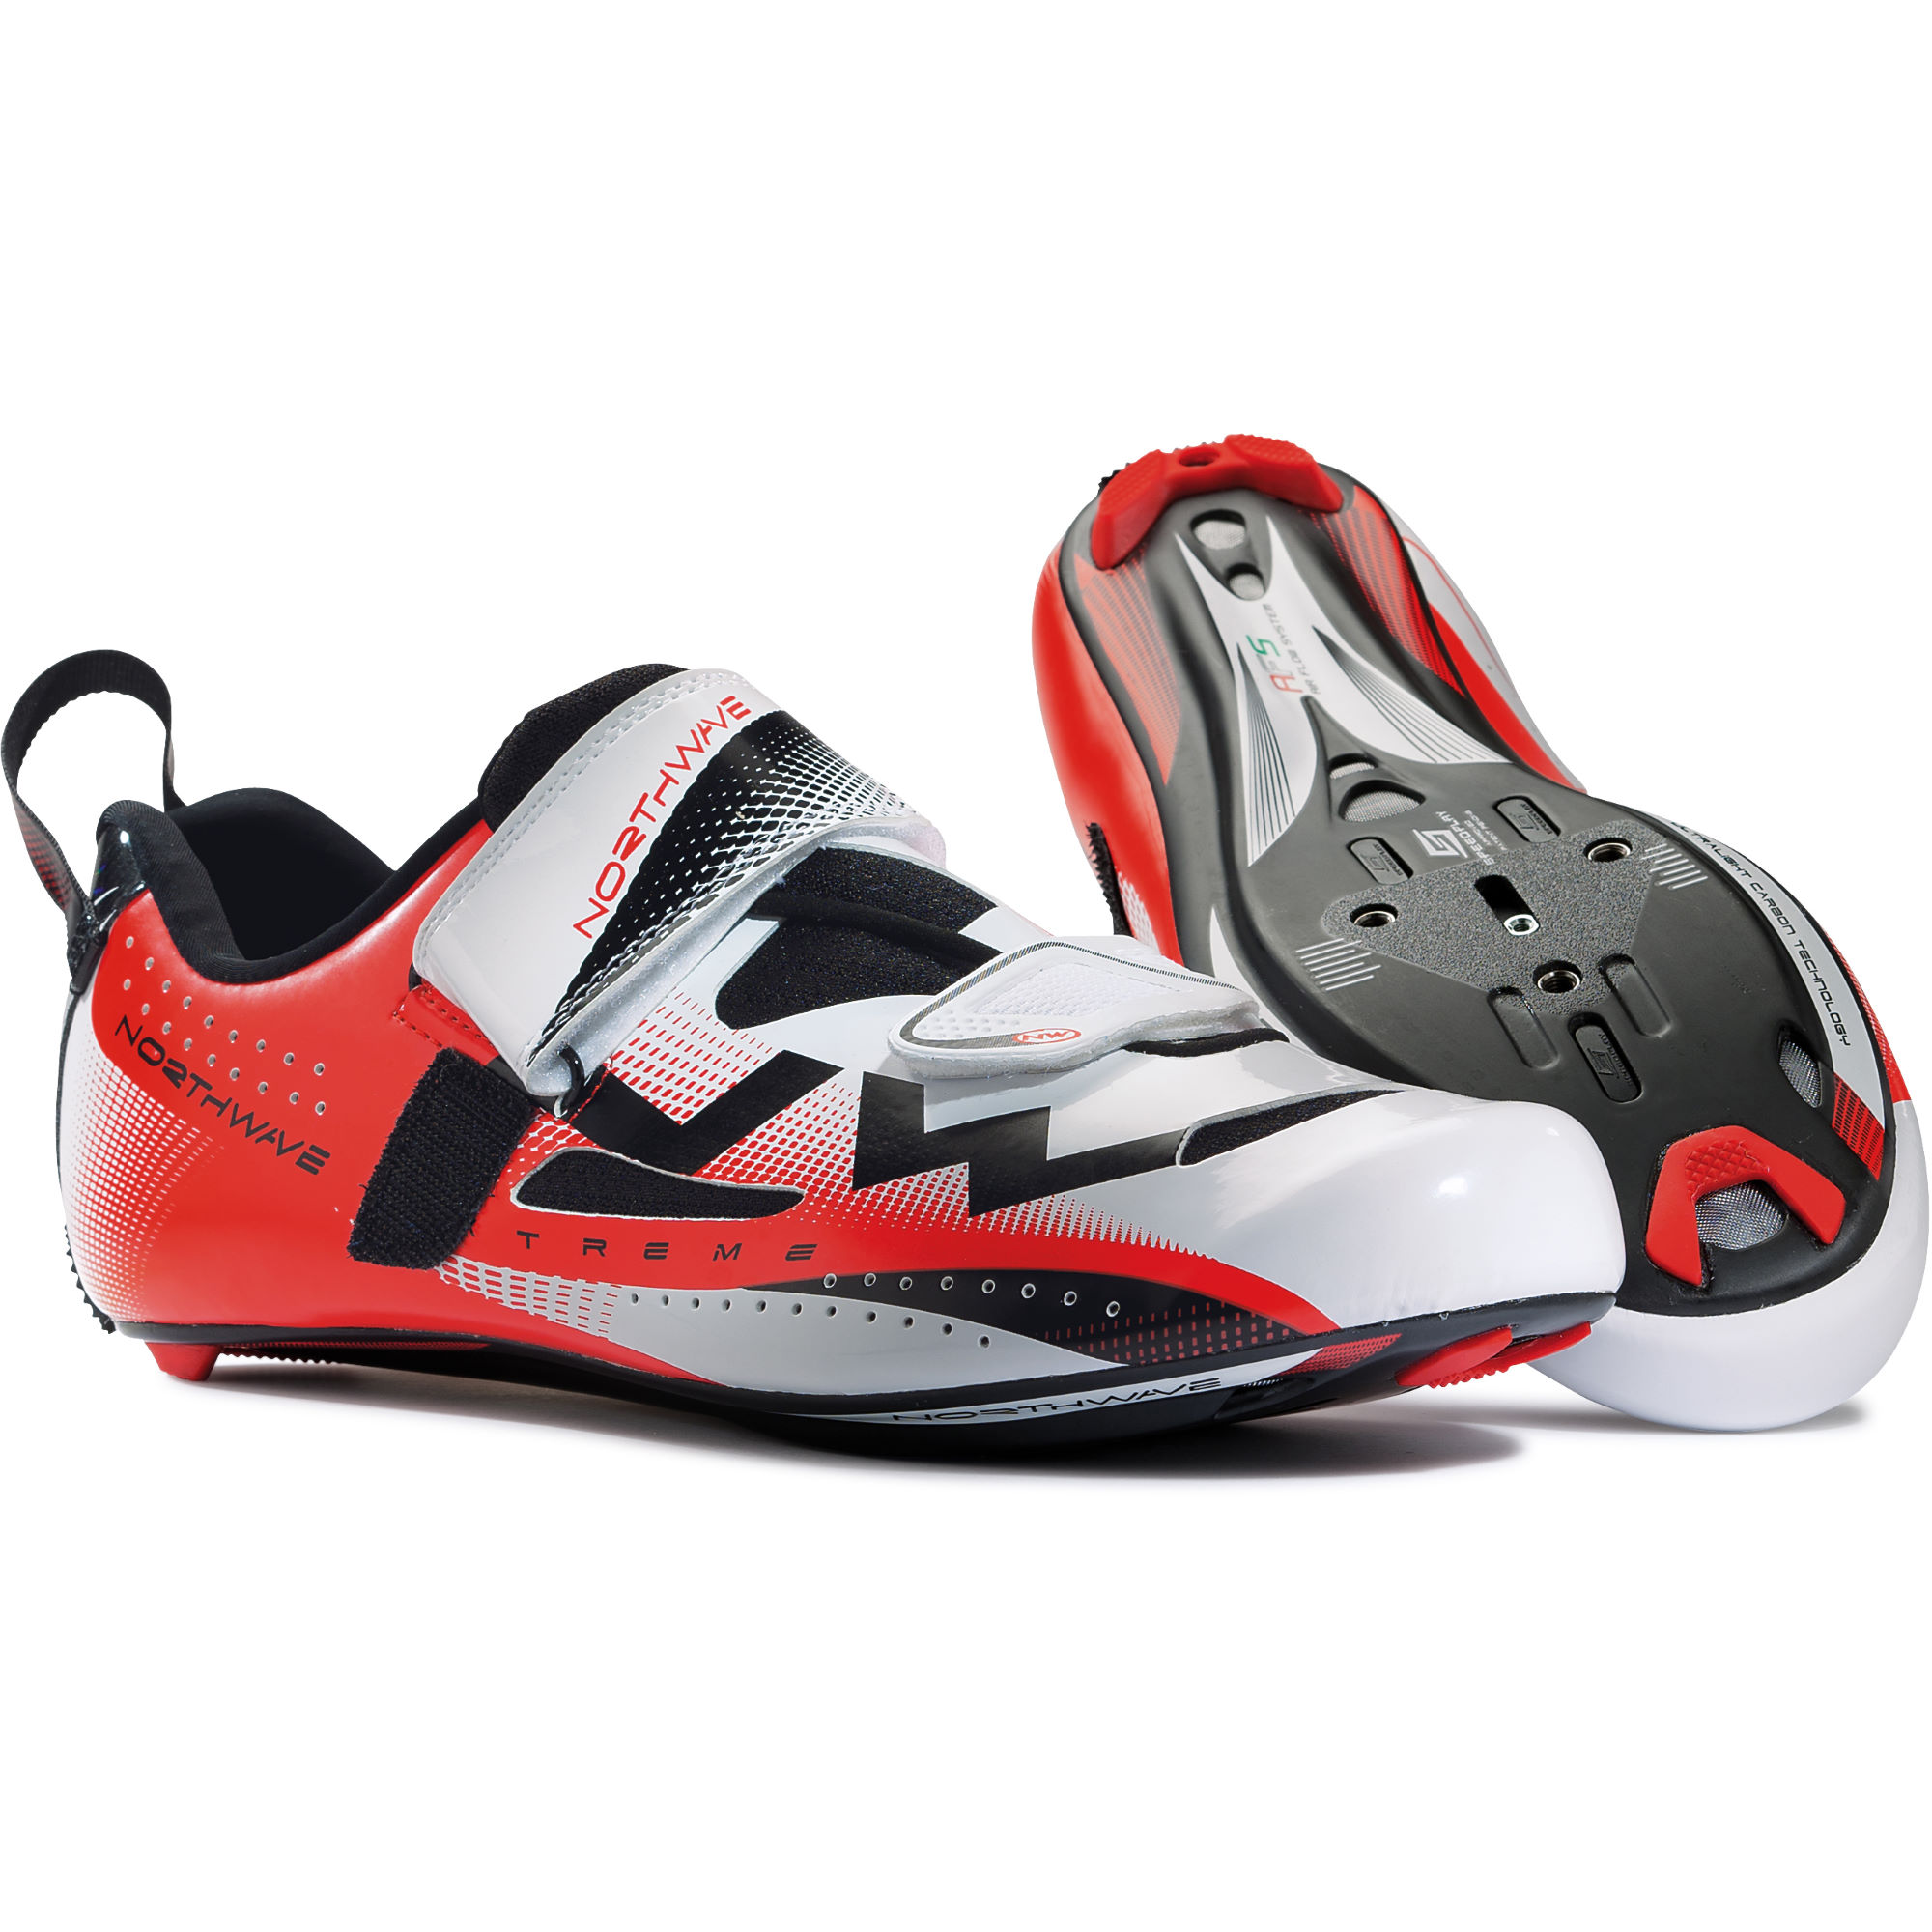 Northwave Mtb Shoes Review